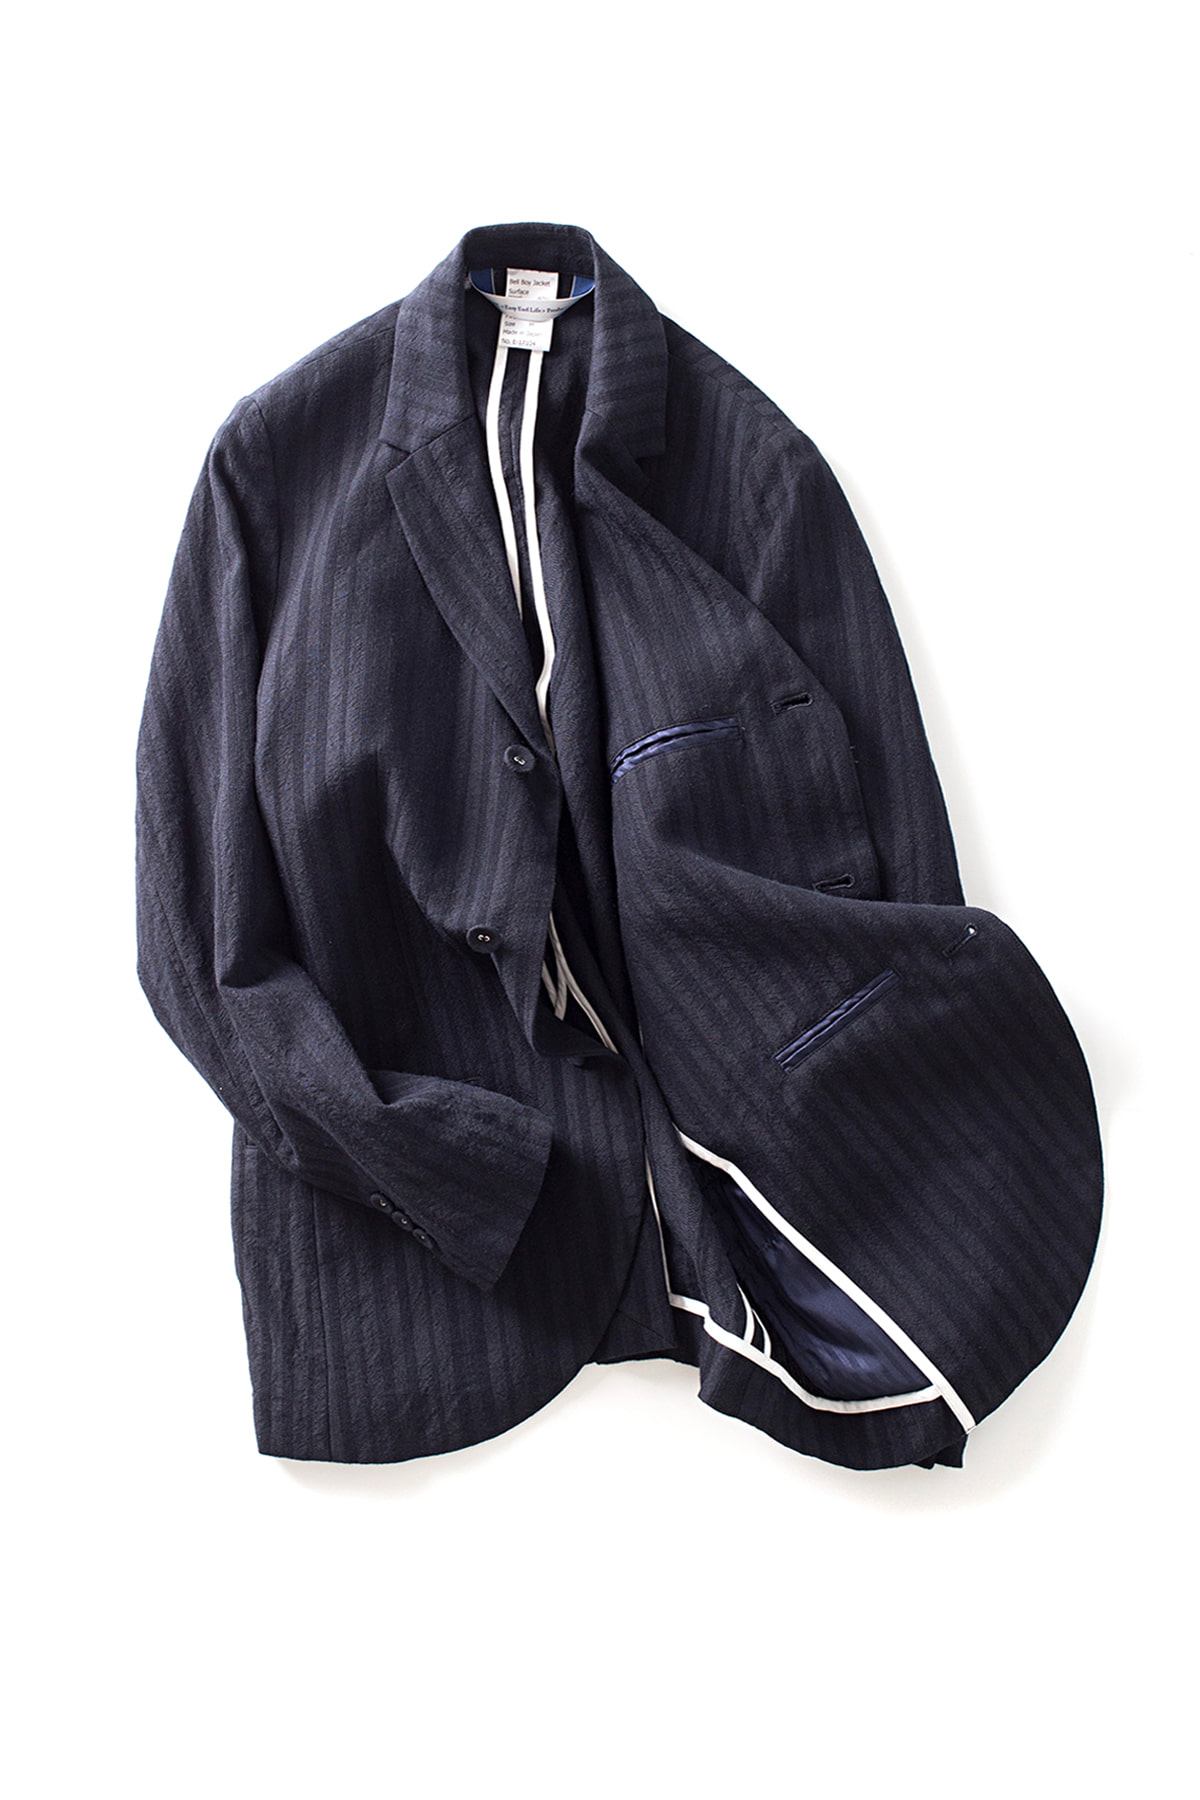 EEL : Bellboy Jacket (Navy Stripe)